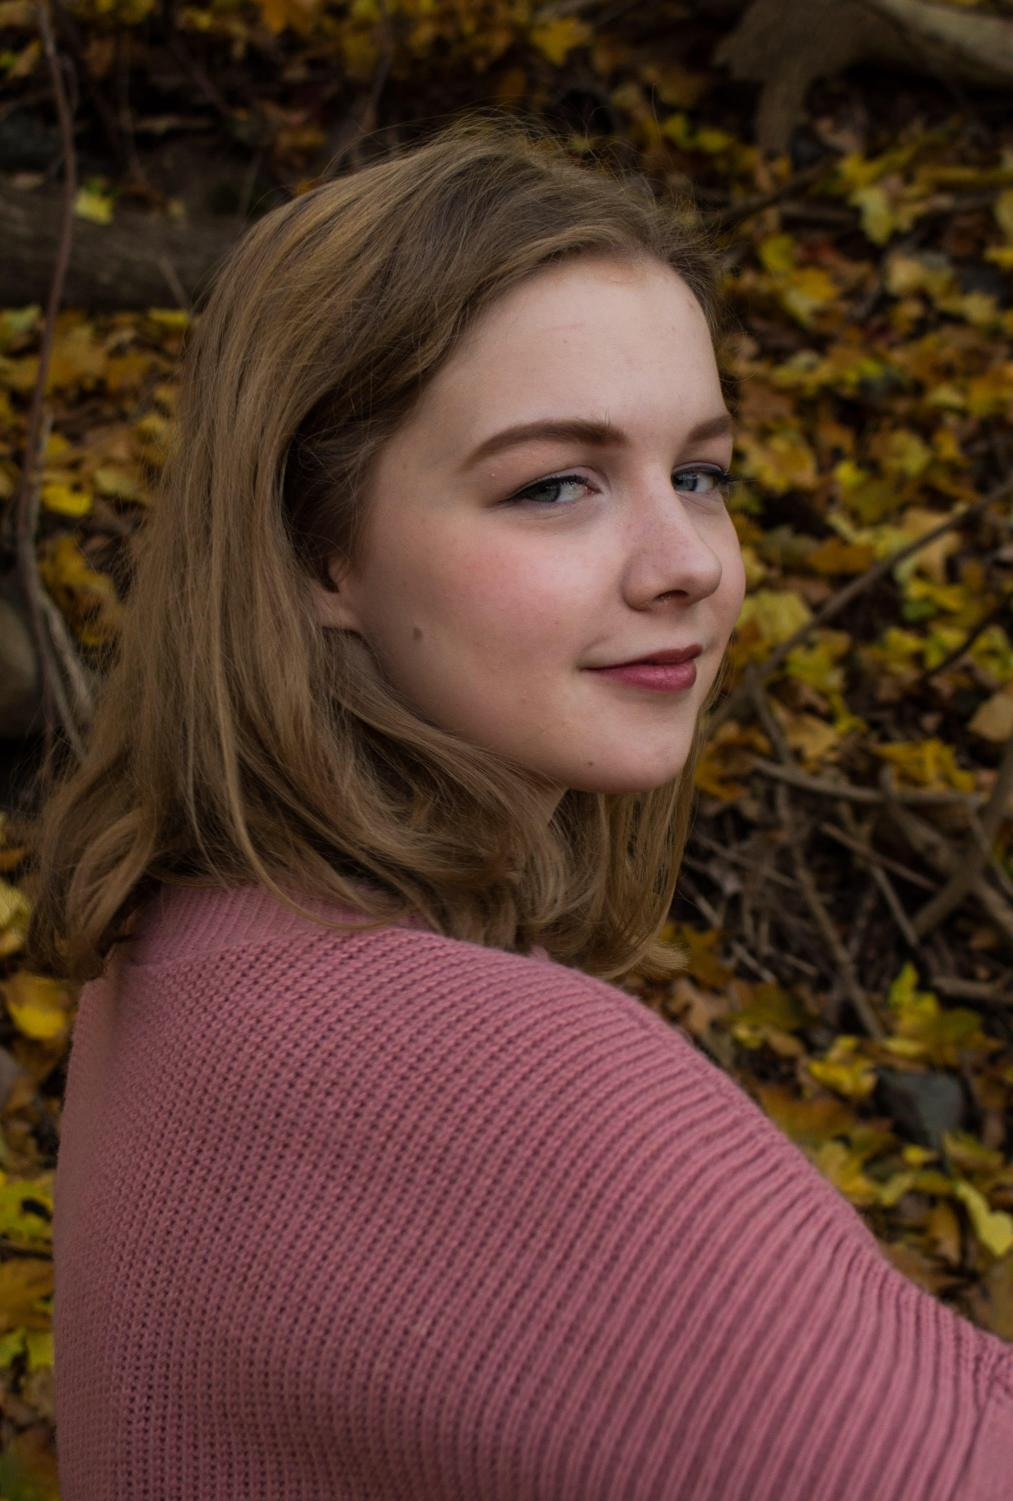 College sophomore Lauren Elwood choreographed Cabaret, which will be the first show performed in the new Irene & Alan Wurtzel Theater.